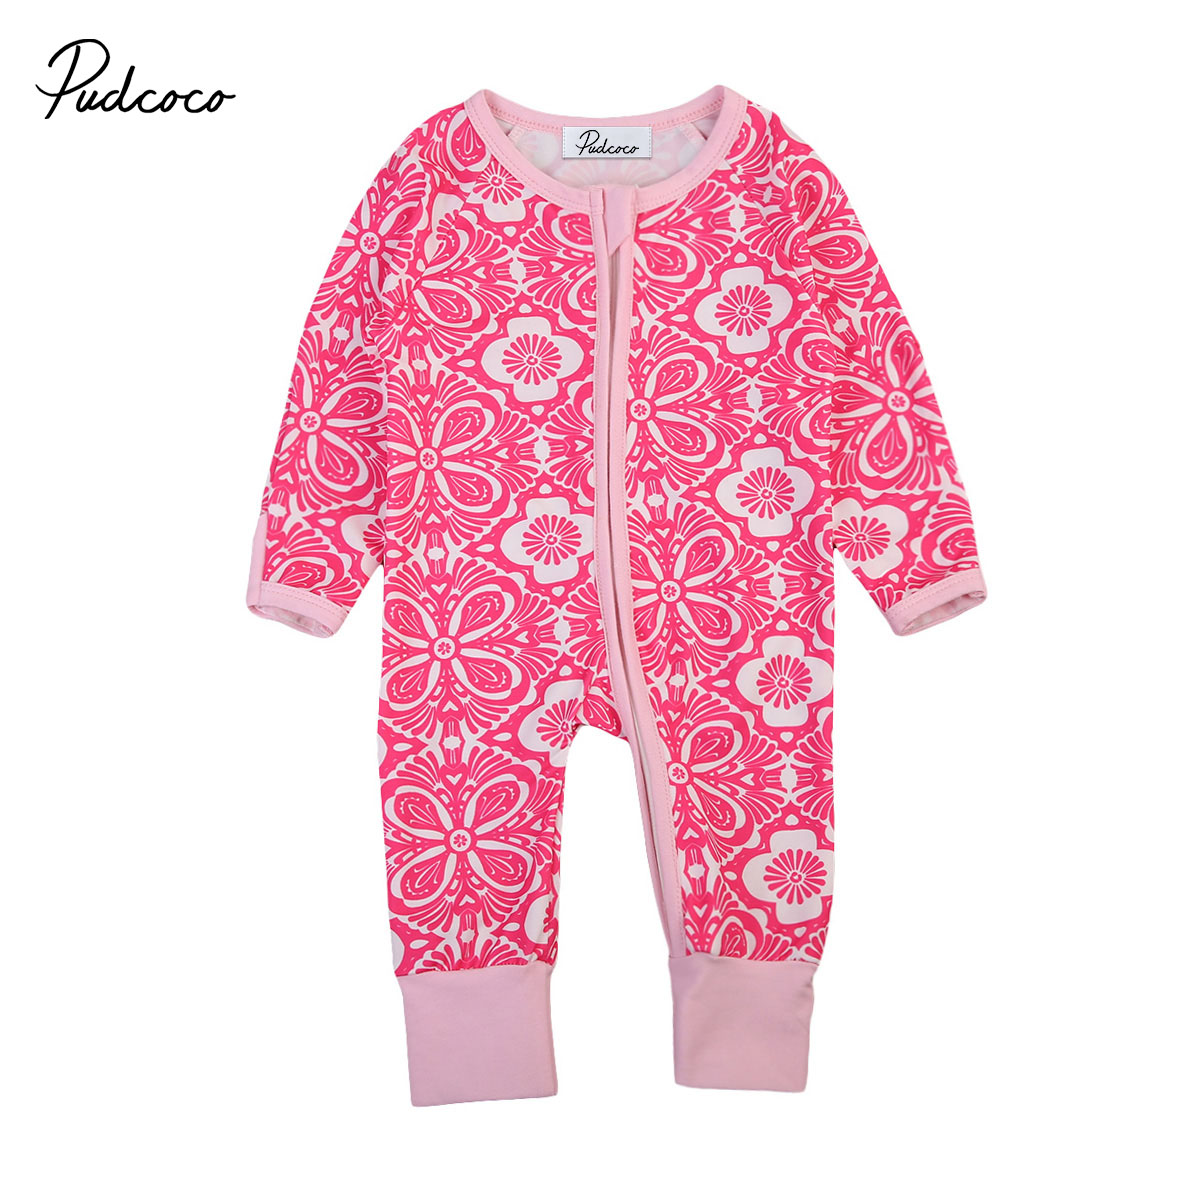 Cute Newborn Baby Boy Girl Long Sleeve Romper Jumpsuit Clothes Outfit Toddler Infant Boys Girls Warm Soft Brief Casual Rompers babyfeet new winter warm boots newborn baby boys girls cute shoes infant toddler soft sole anti slip snow booties size3 5 11